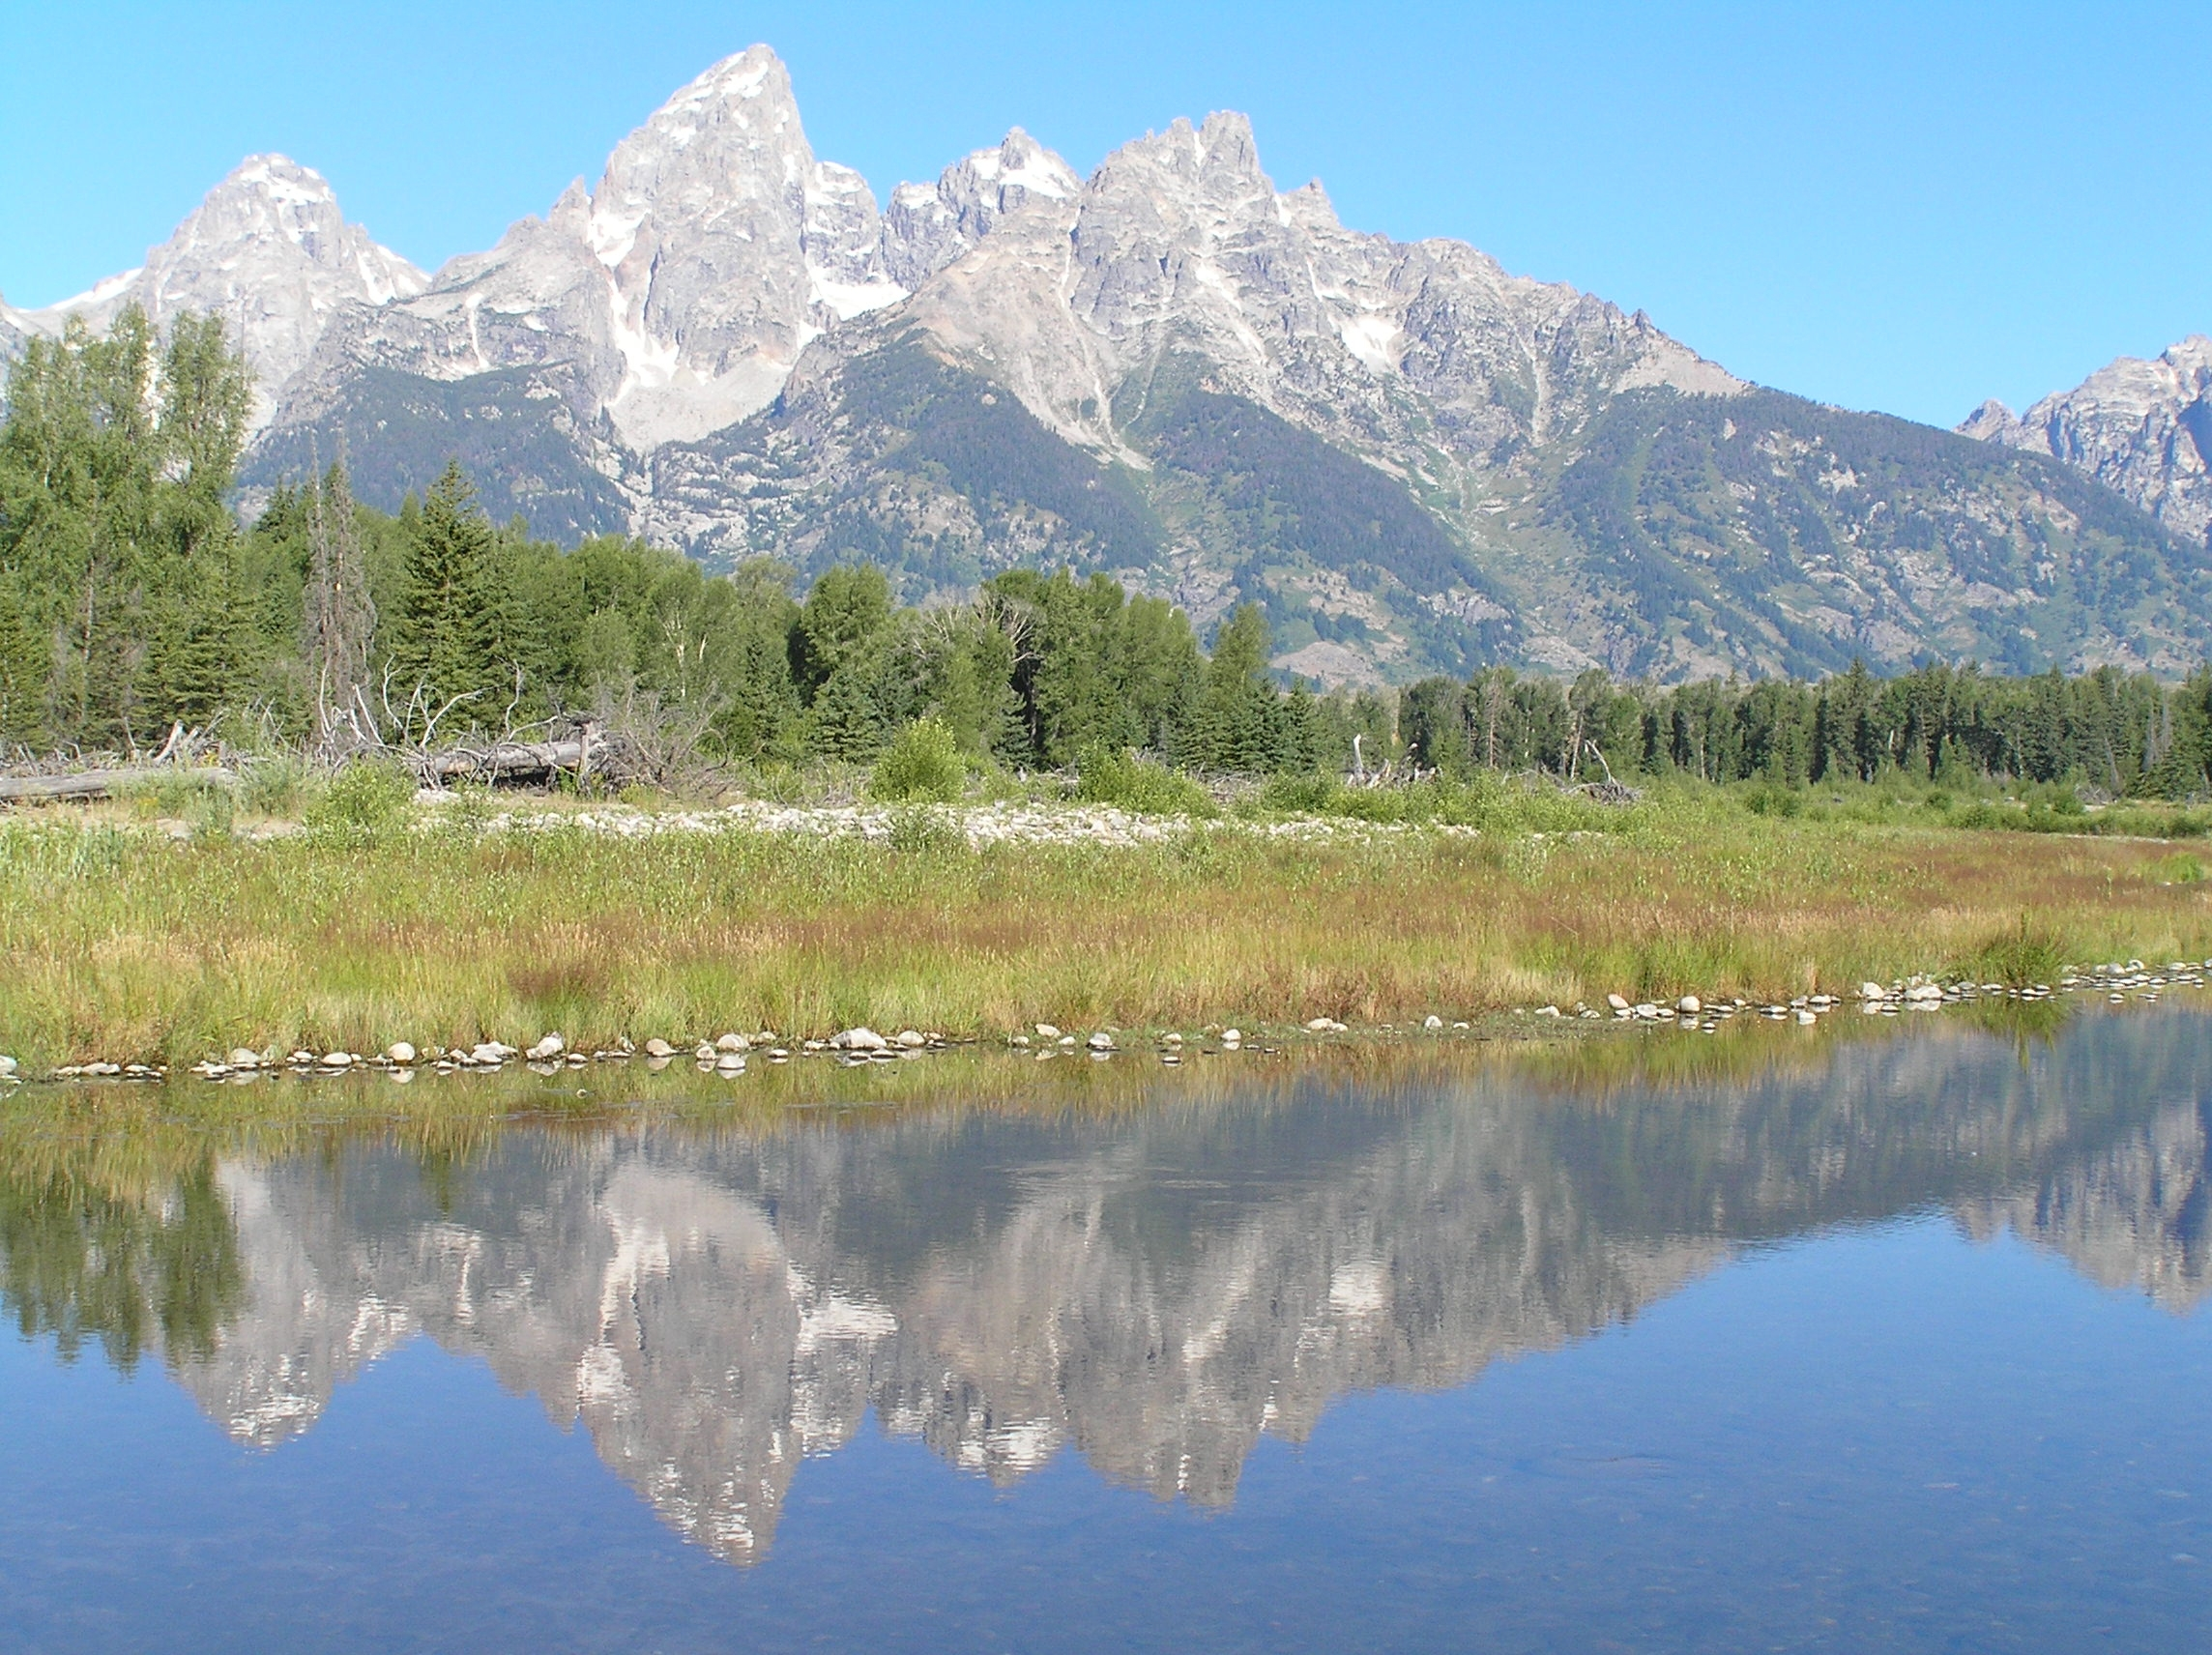 Teton mountain range in Grand Teton NP